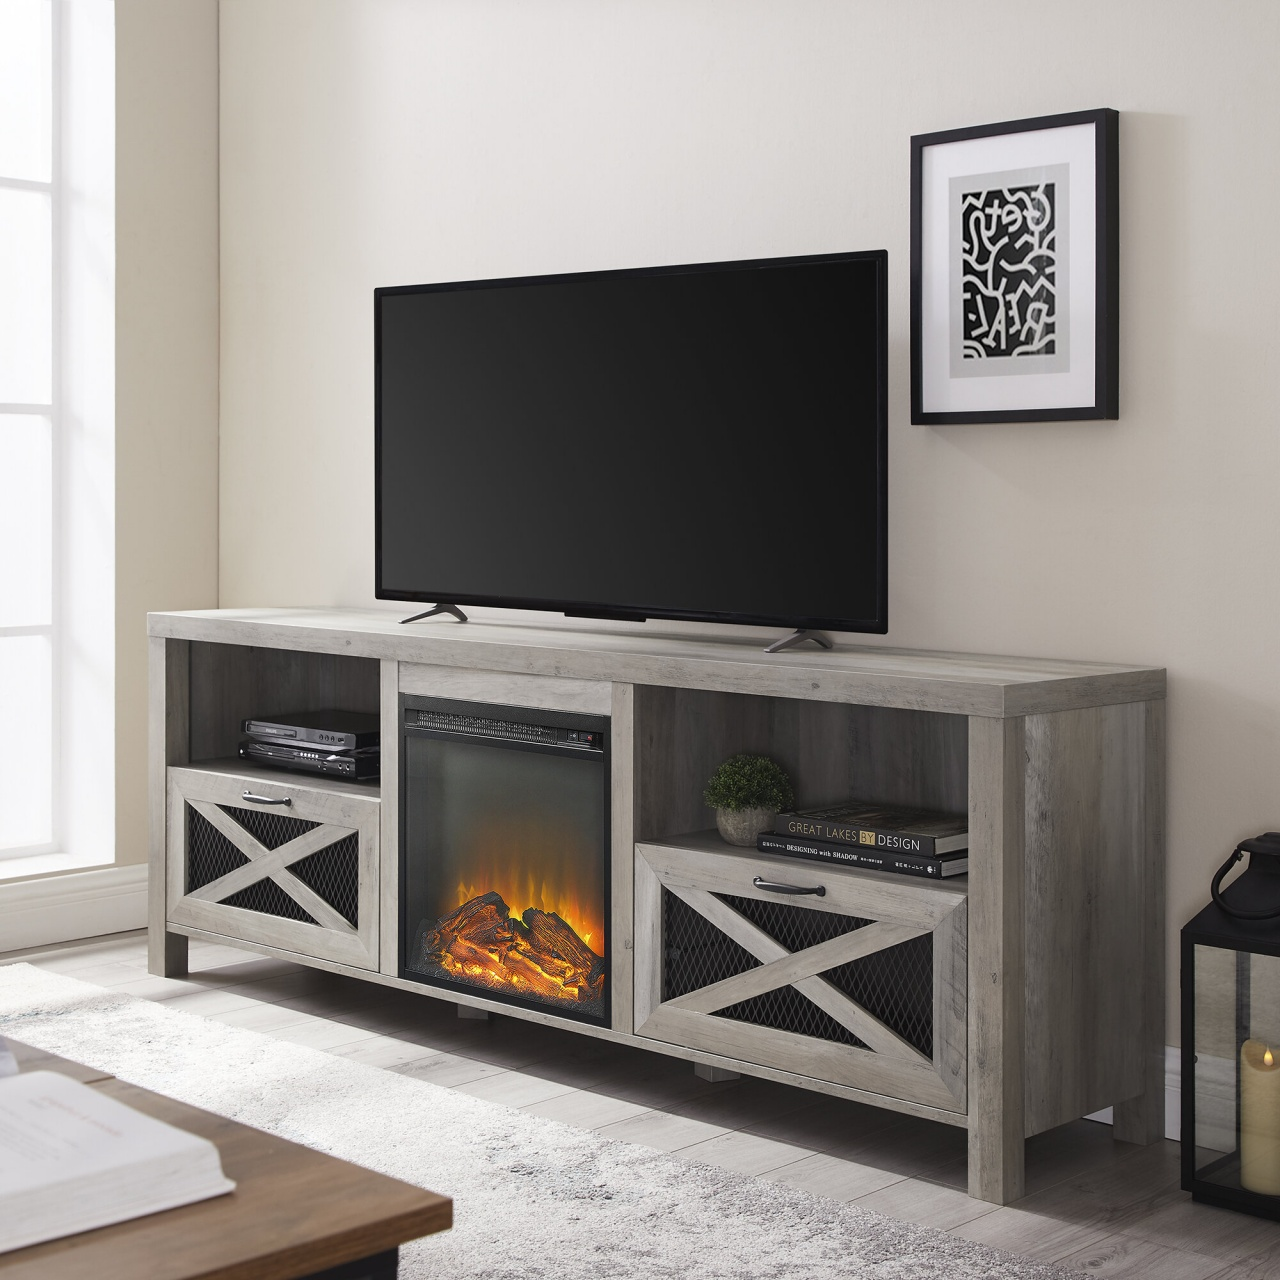 big lots fireplace entertainment center tansey tv stand for tvs up to 78 inches from big lots fireplace entertainment center